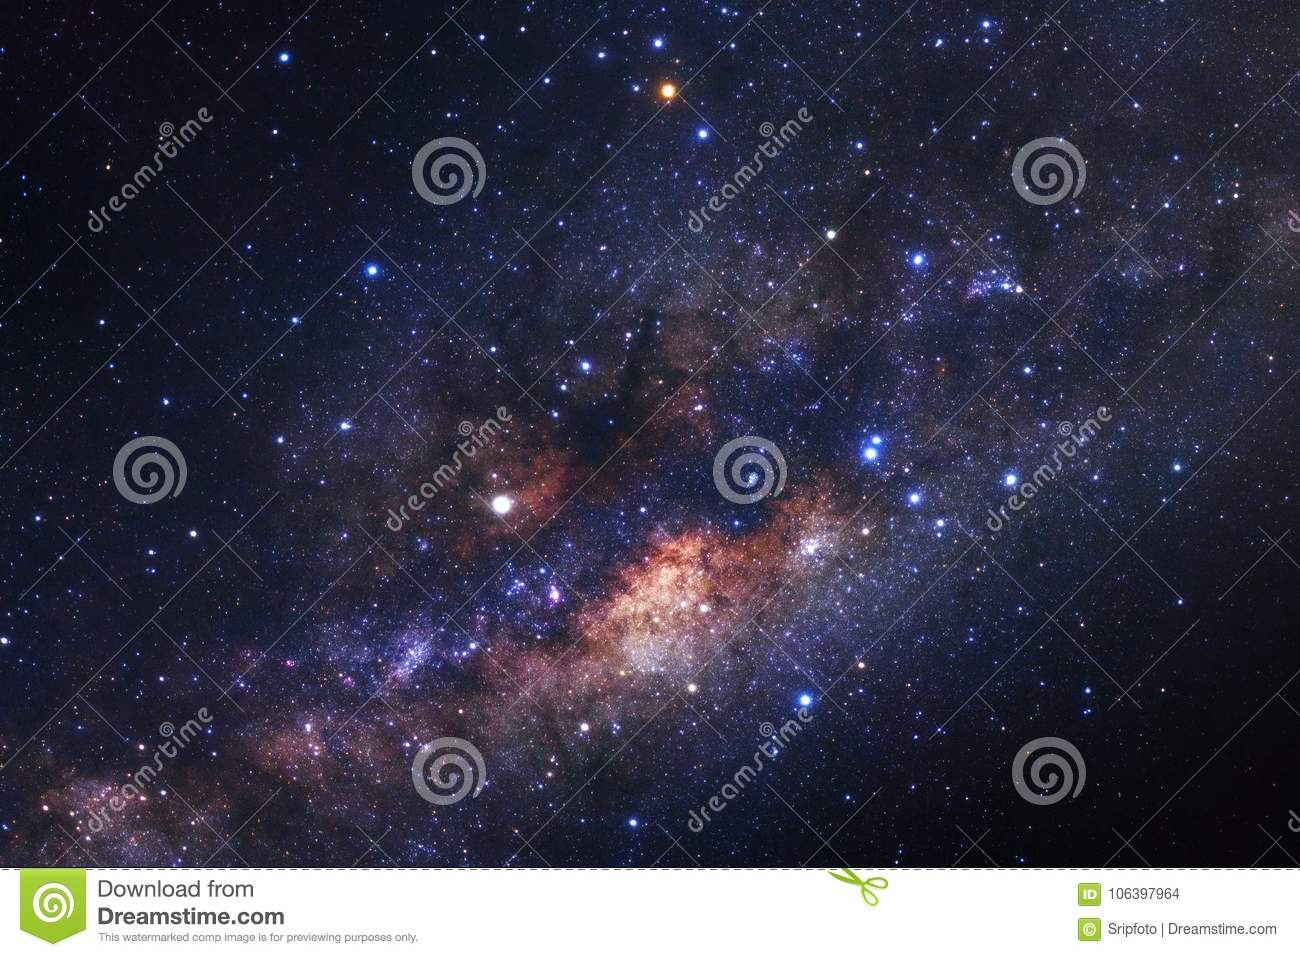 Download Milky Way Galaxy With Stars And Space Dust In The Universe Stock Photo - Image of science, nebulae: 106397964